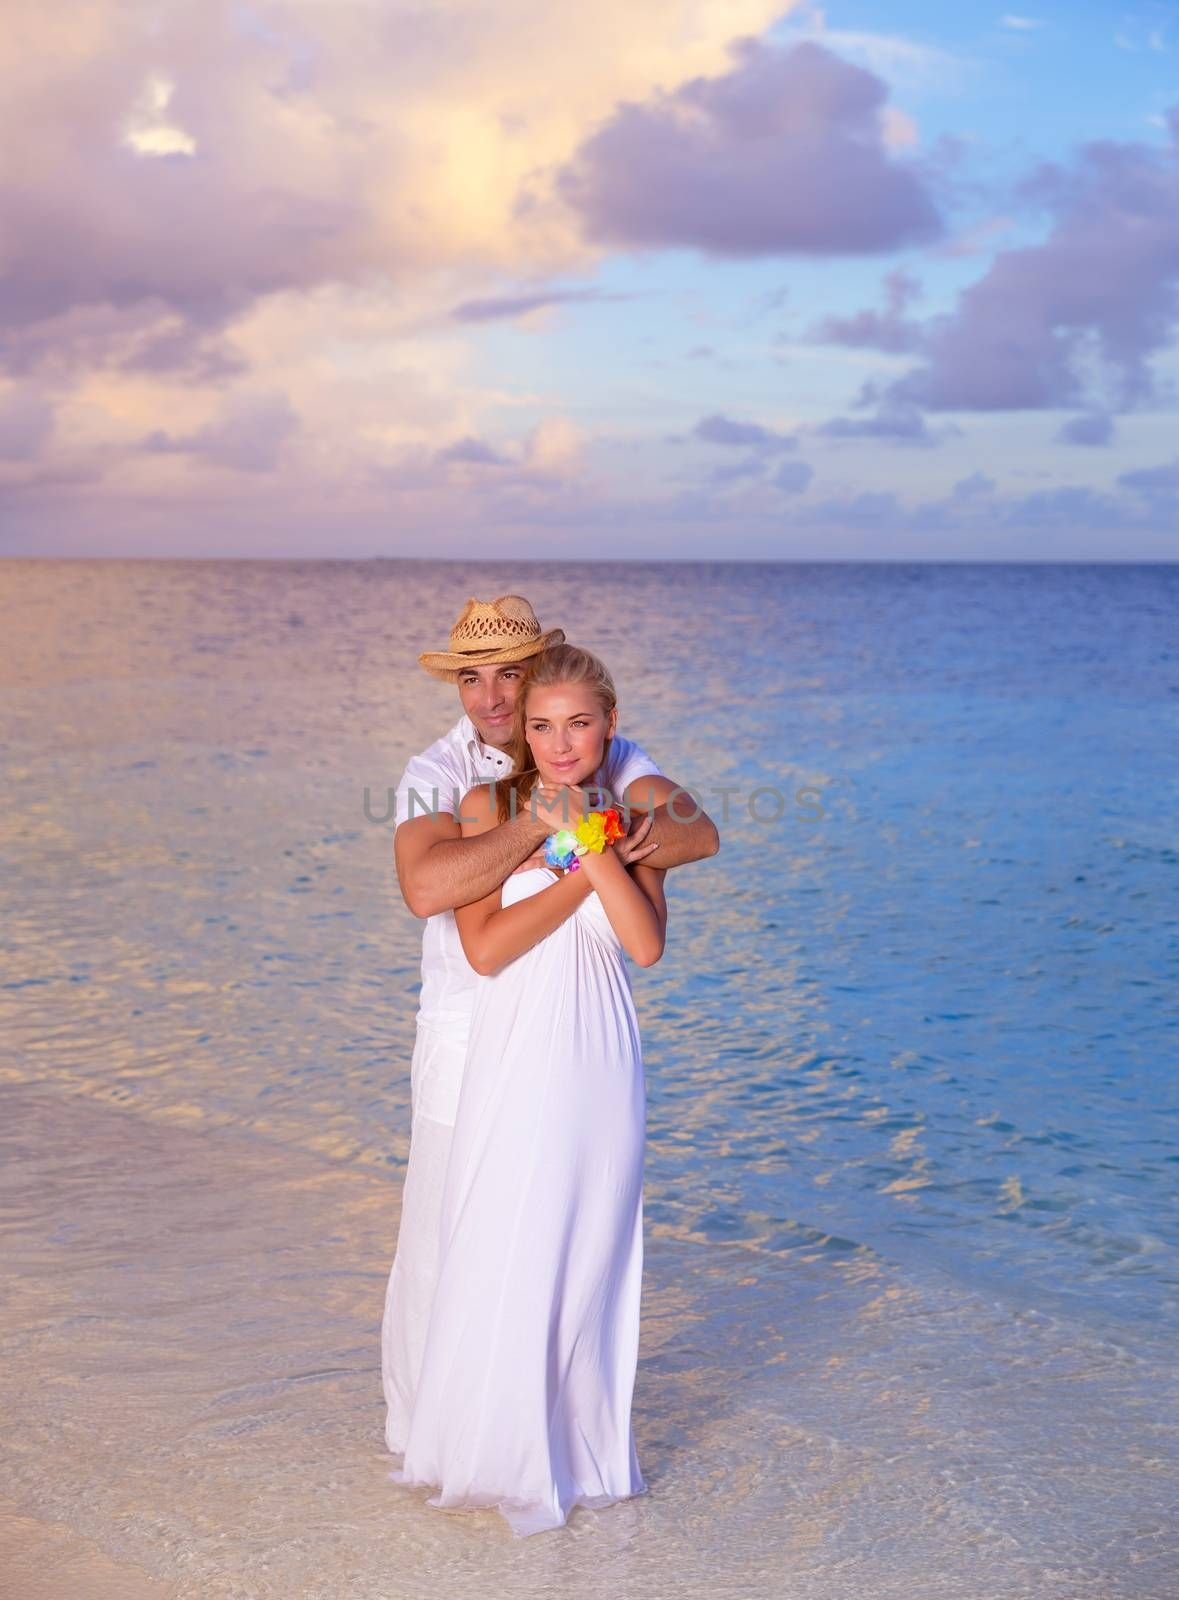 Beautiful couple relaxing on the beach in the evening, romantic date on seashore, spending honeymoon on Maldives